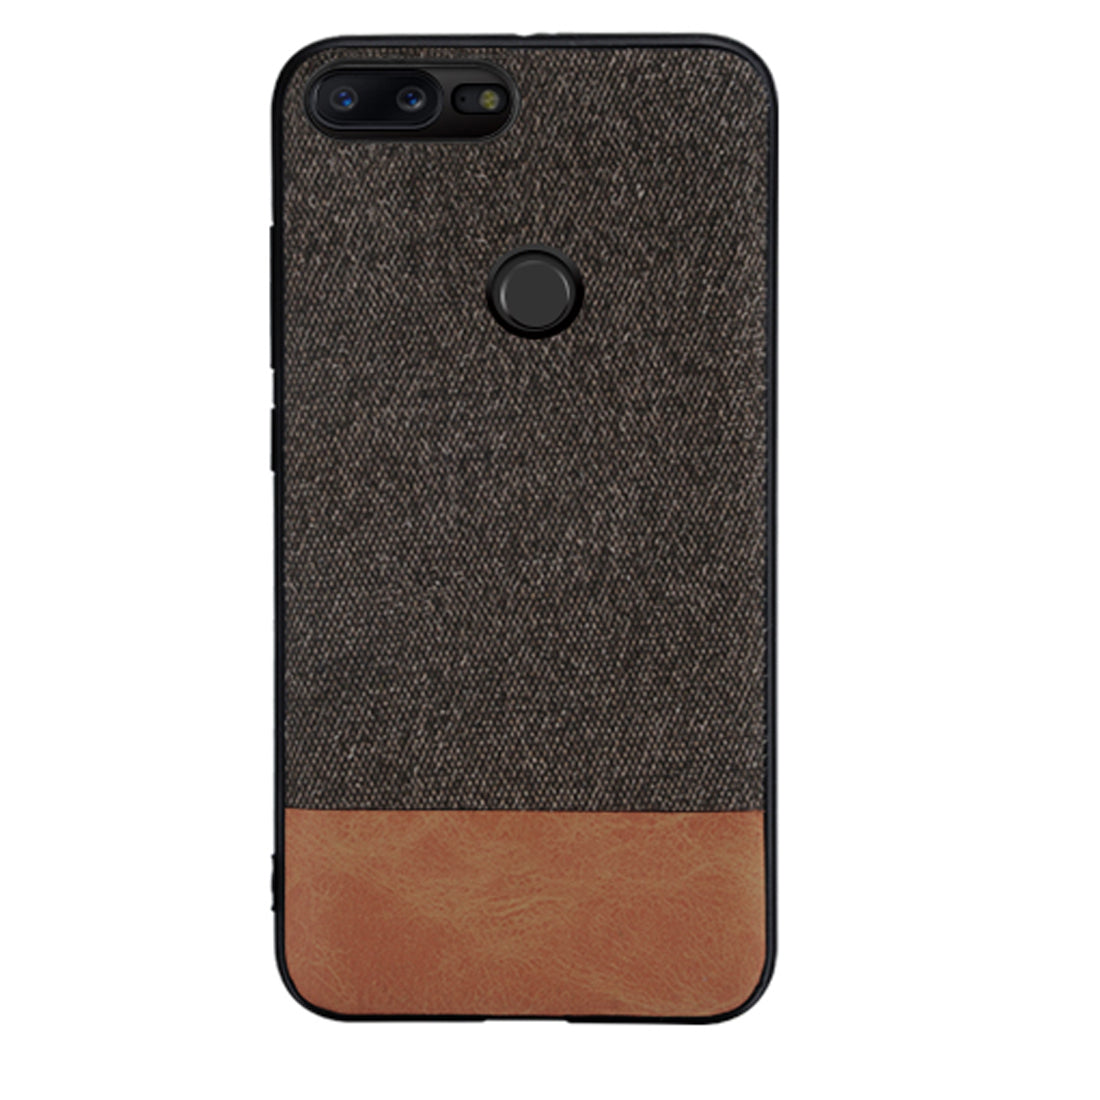 Fabric + Leather Hybrid Protective Case Cover for Oneplus 5T -  Black , Brown - Mobizang